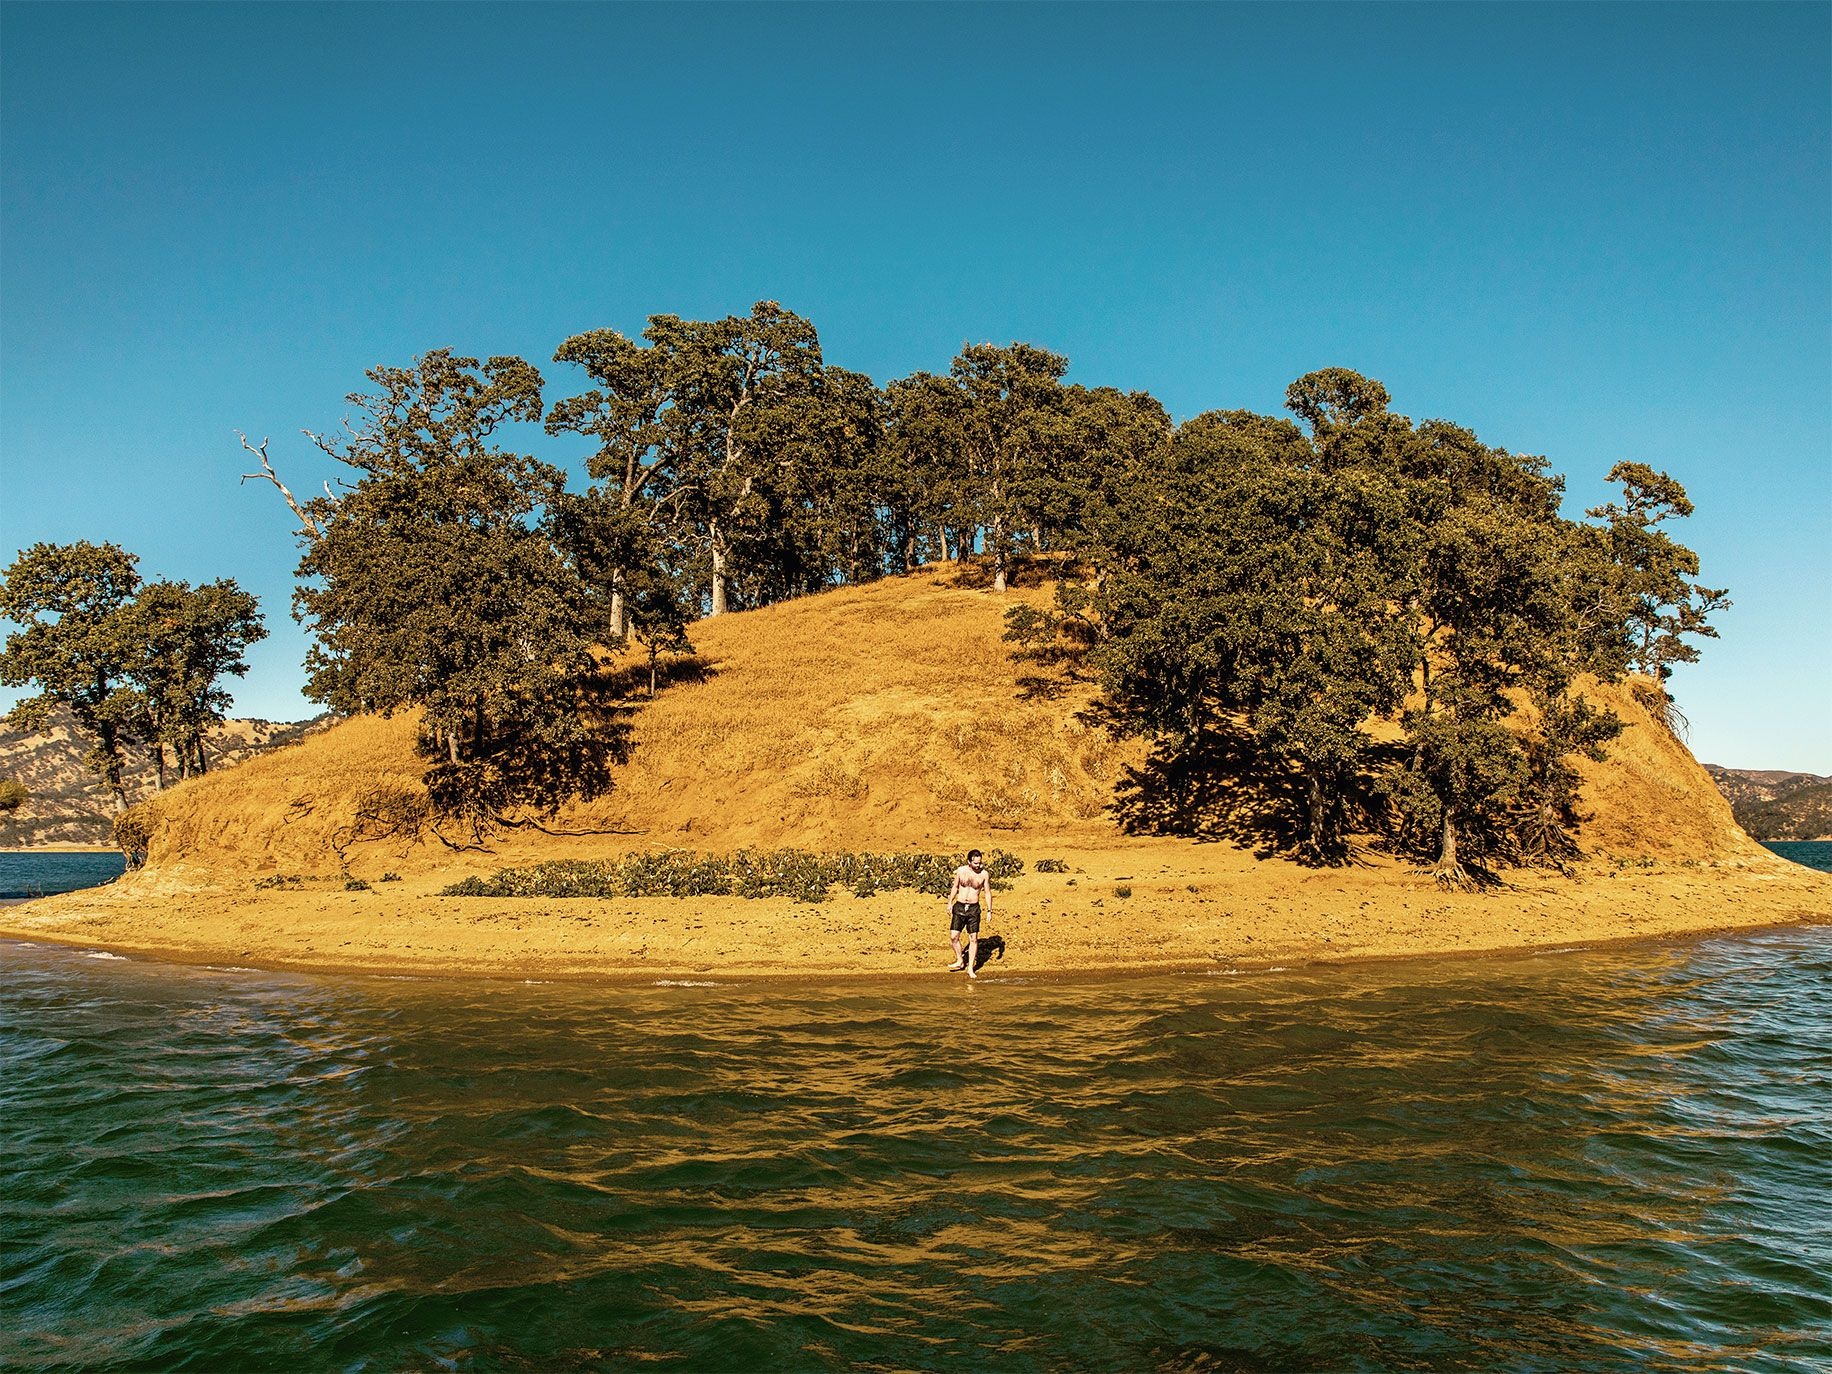 An island like this was once a hilltop that looked over the Berryessa Valley below. Today the lake is a popular recreation spot.